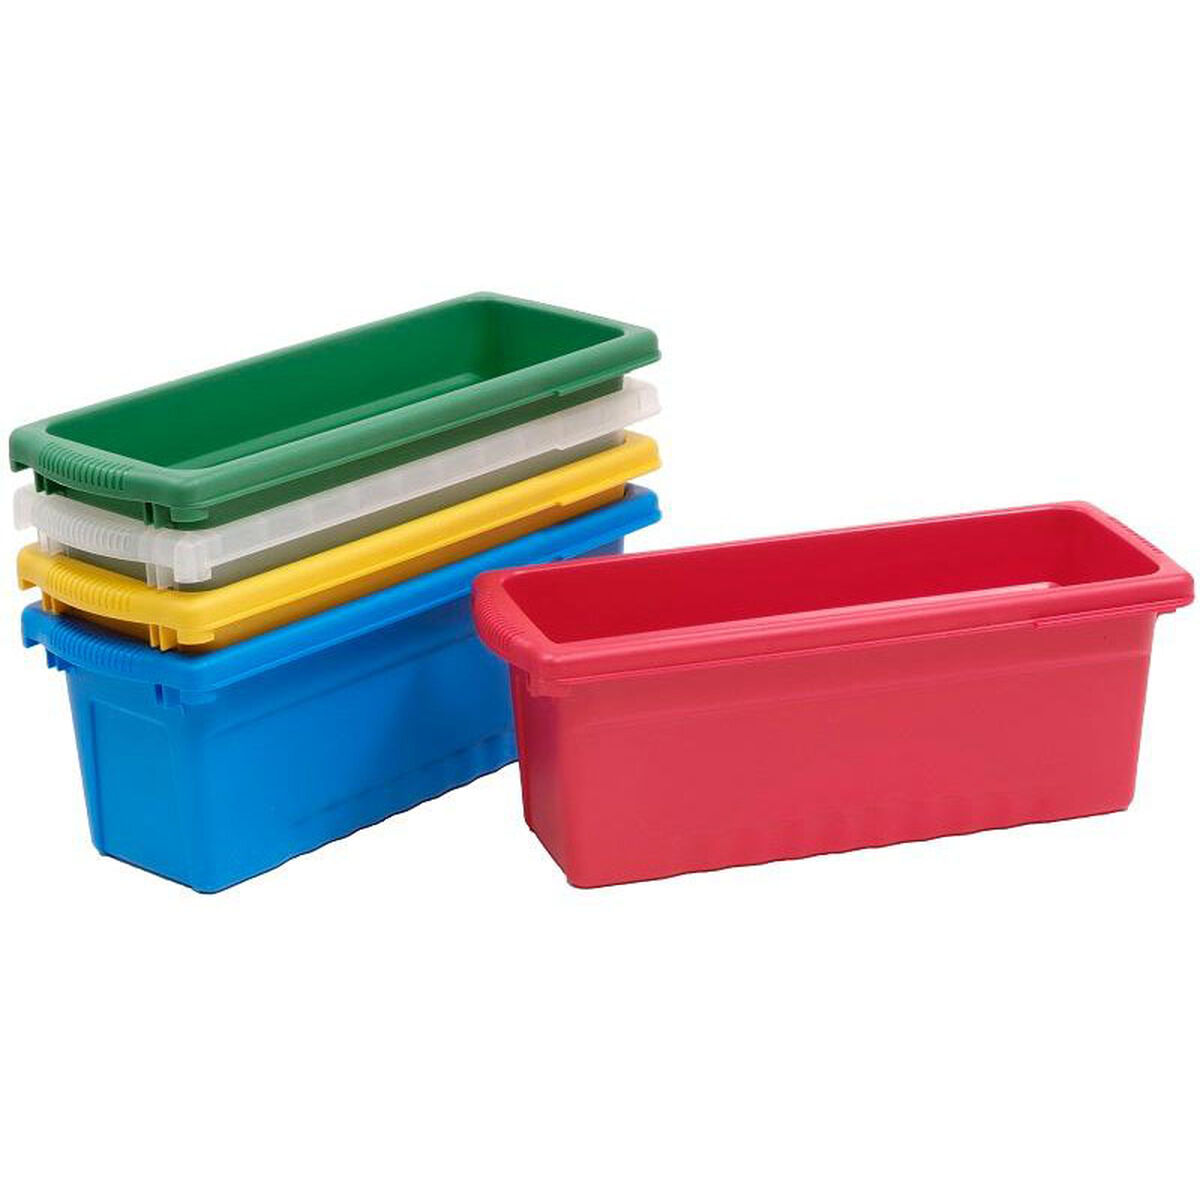 Image result for small plastic tub